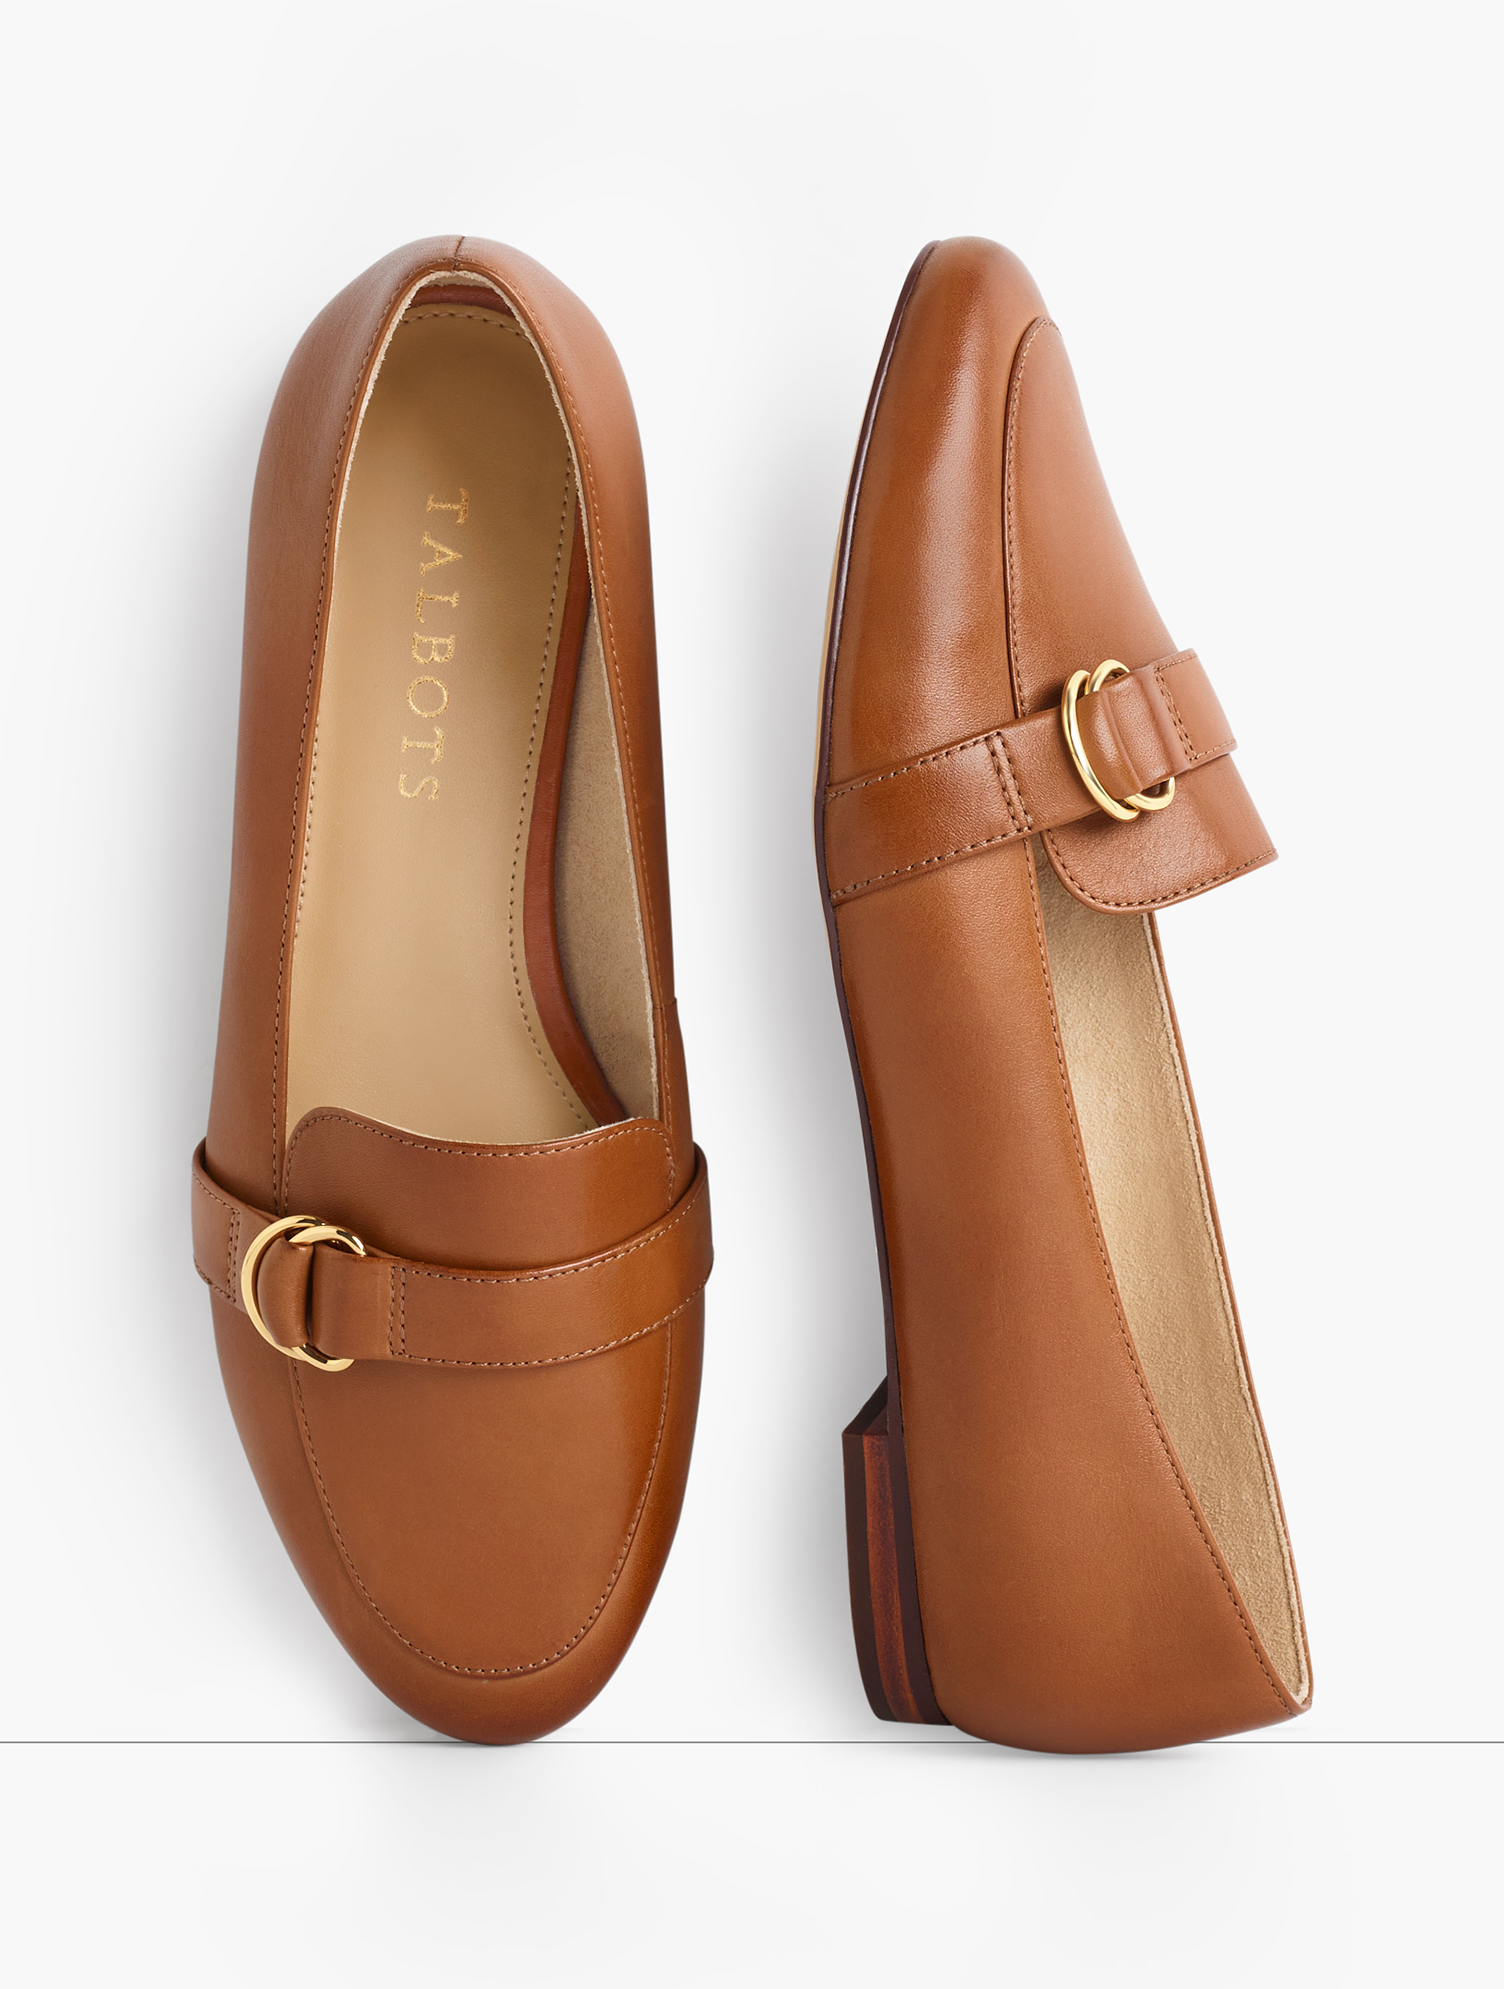 Our iconic Ryan loafers. Elegant, essential, extraordinarily comfortable. Rendered in fashionable leather, with gold D-ring detail. Features Gift Box/Gift Wrap is not available for this item Flat heel Round toe 3MM Memory foam footbed Imported Material: 100% Leather Ryan D-Ring Loafers - Leather - Pecan Brown - 9-1/2M Talbots